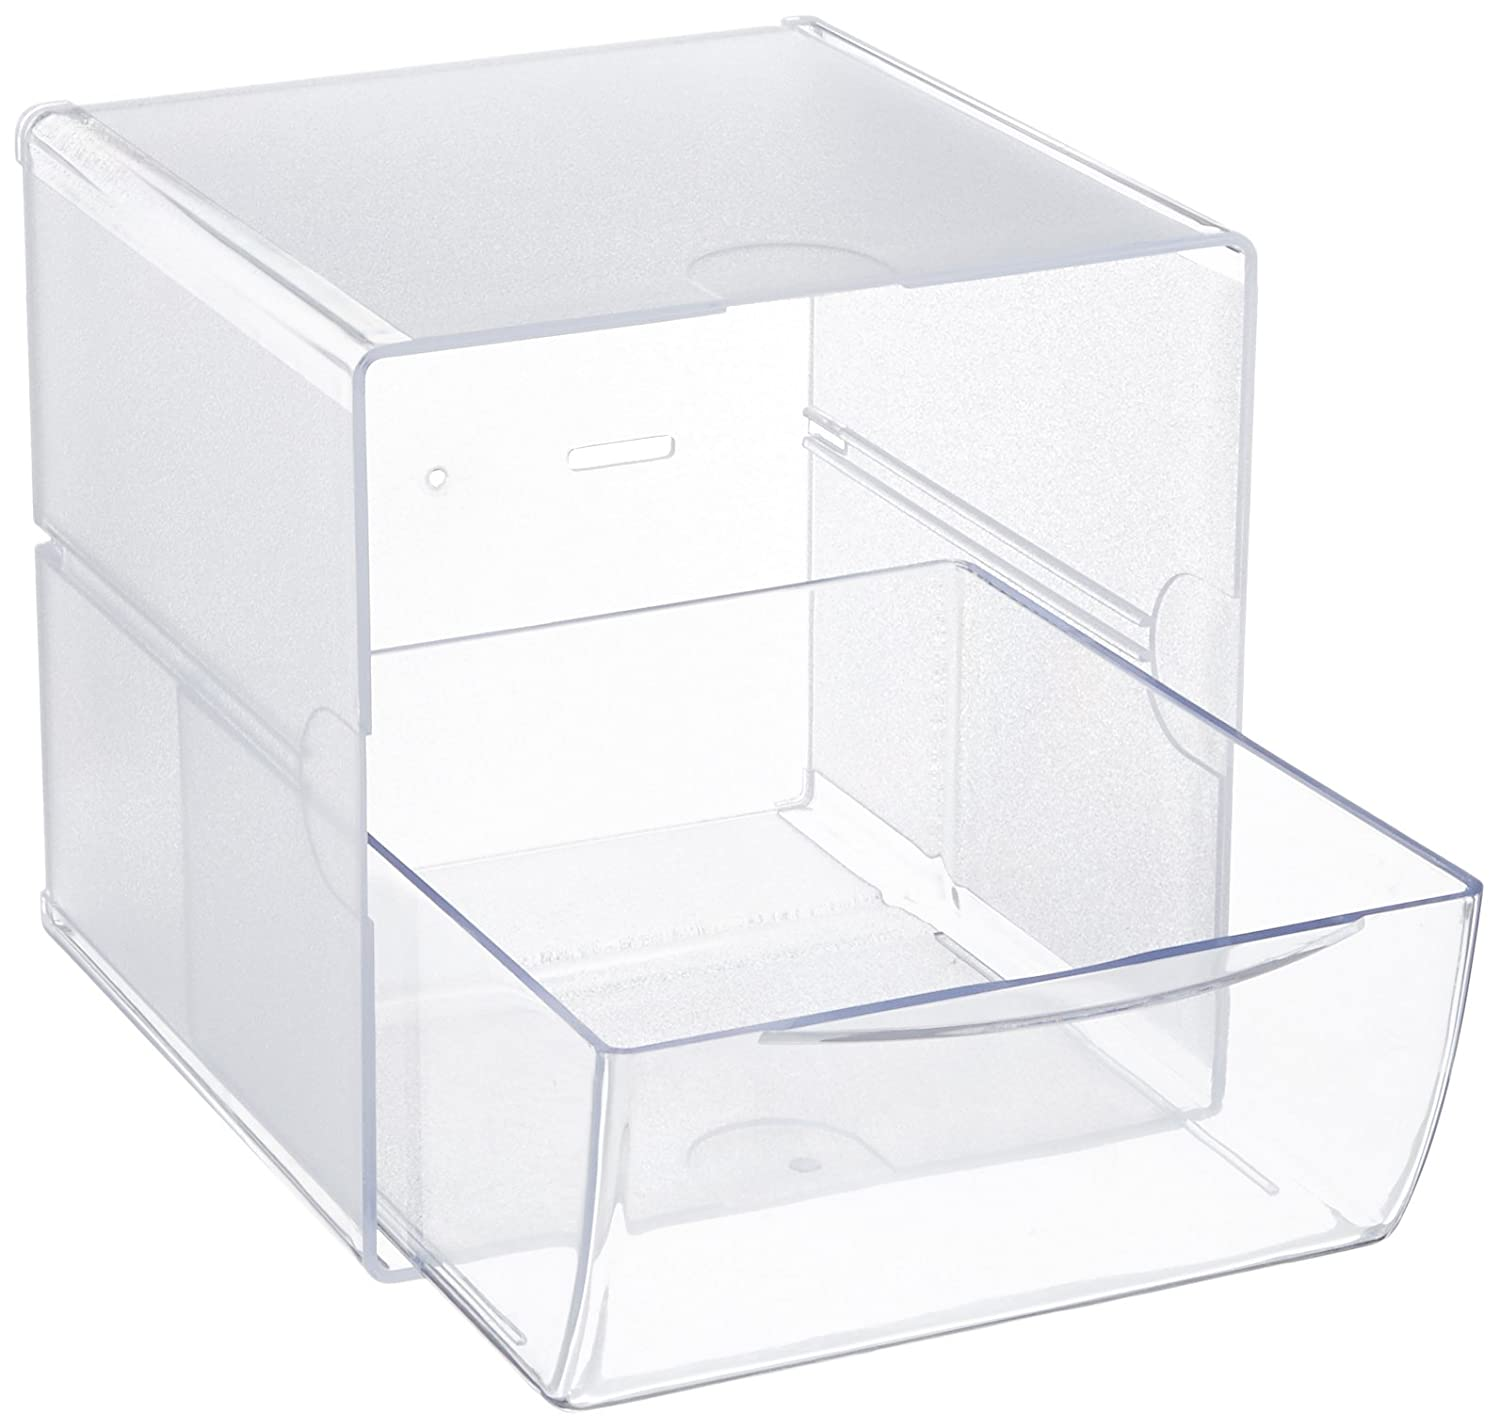 "Deflecto Stackable Open Cube Organizer, Desk and Craft Organizer, Clear, 6""W x 6""H x 6""D (350401CR) Deflect-o Products"